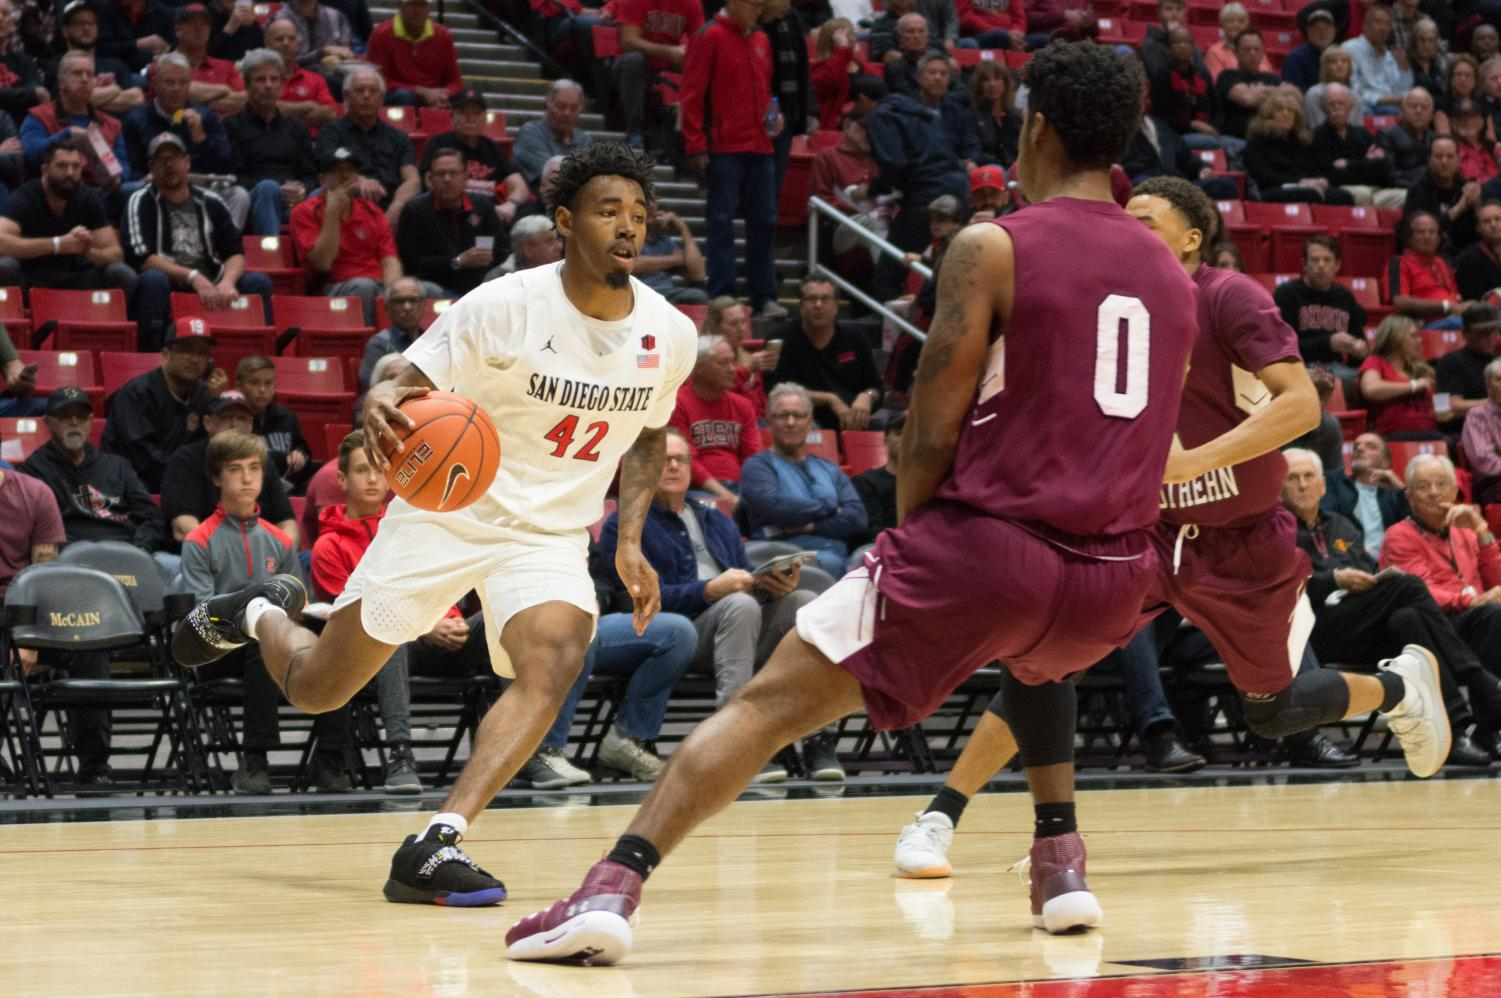 Jeremy Hemsley controls the ball during the Aztecs 103-64 victory over Texas Southern on Nov. 14 at Viejas Arena.